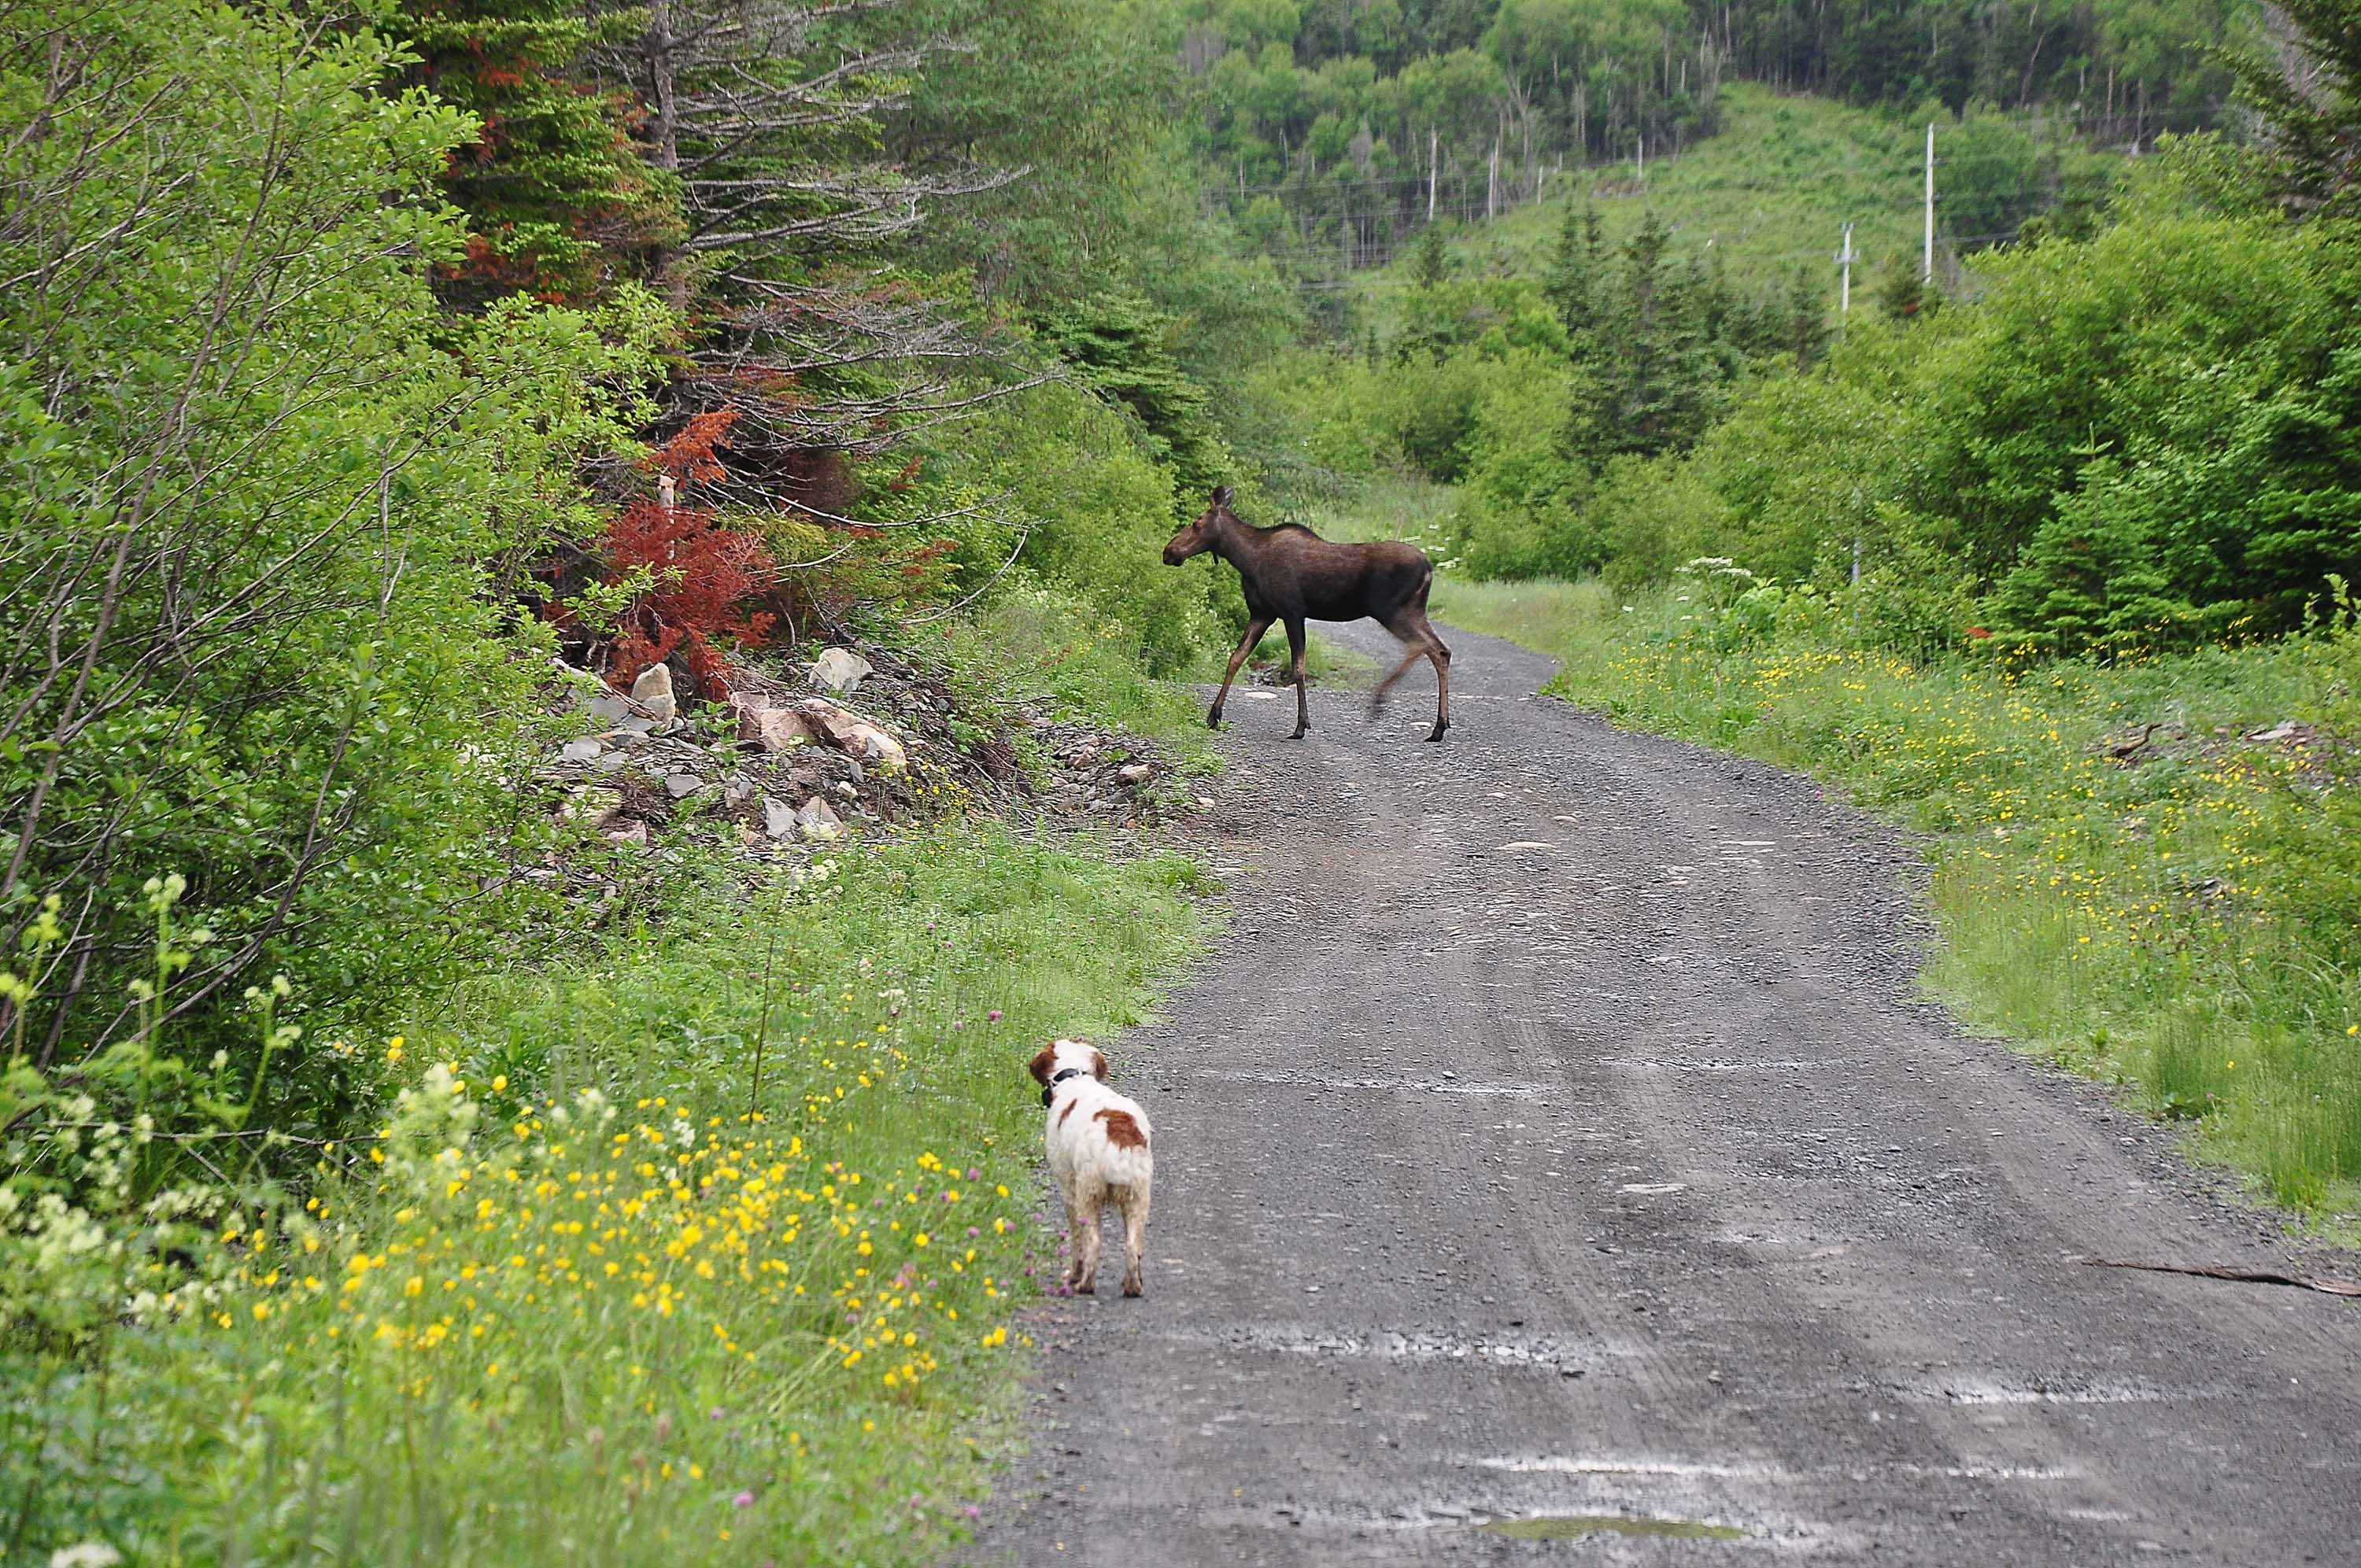 Dog chasing a moose into the woods